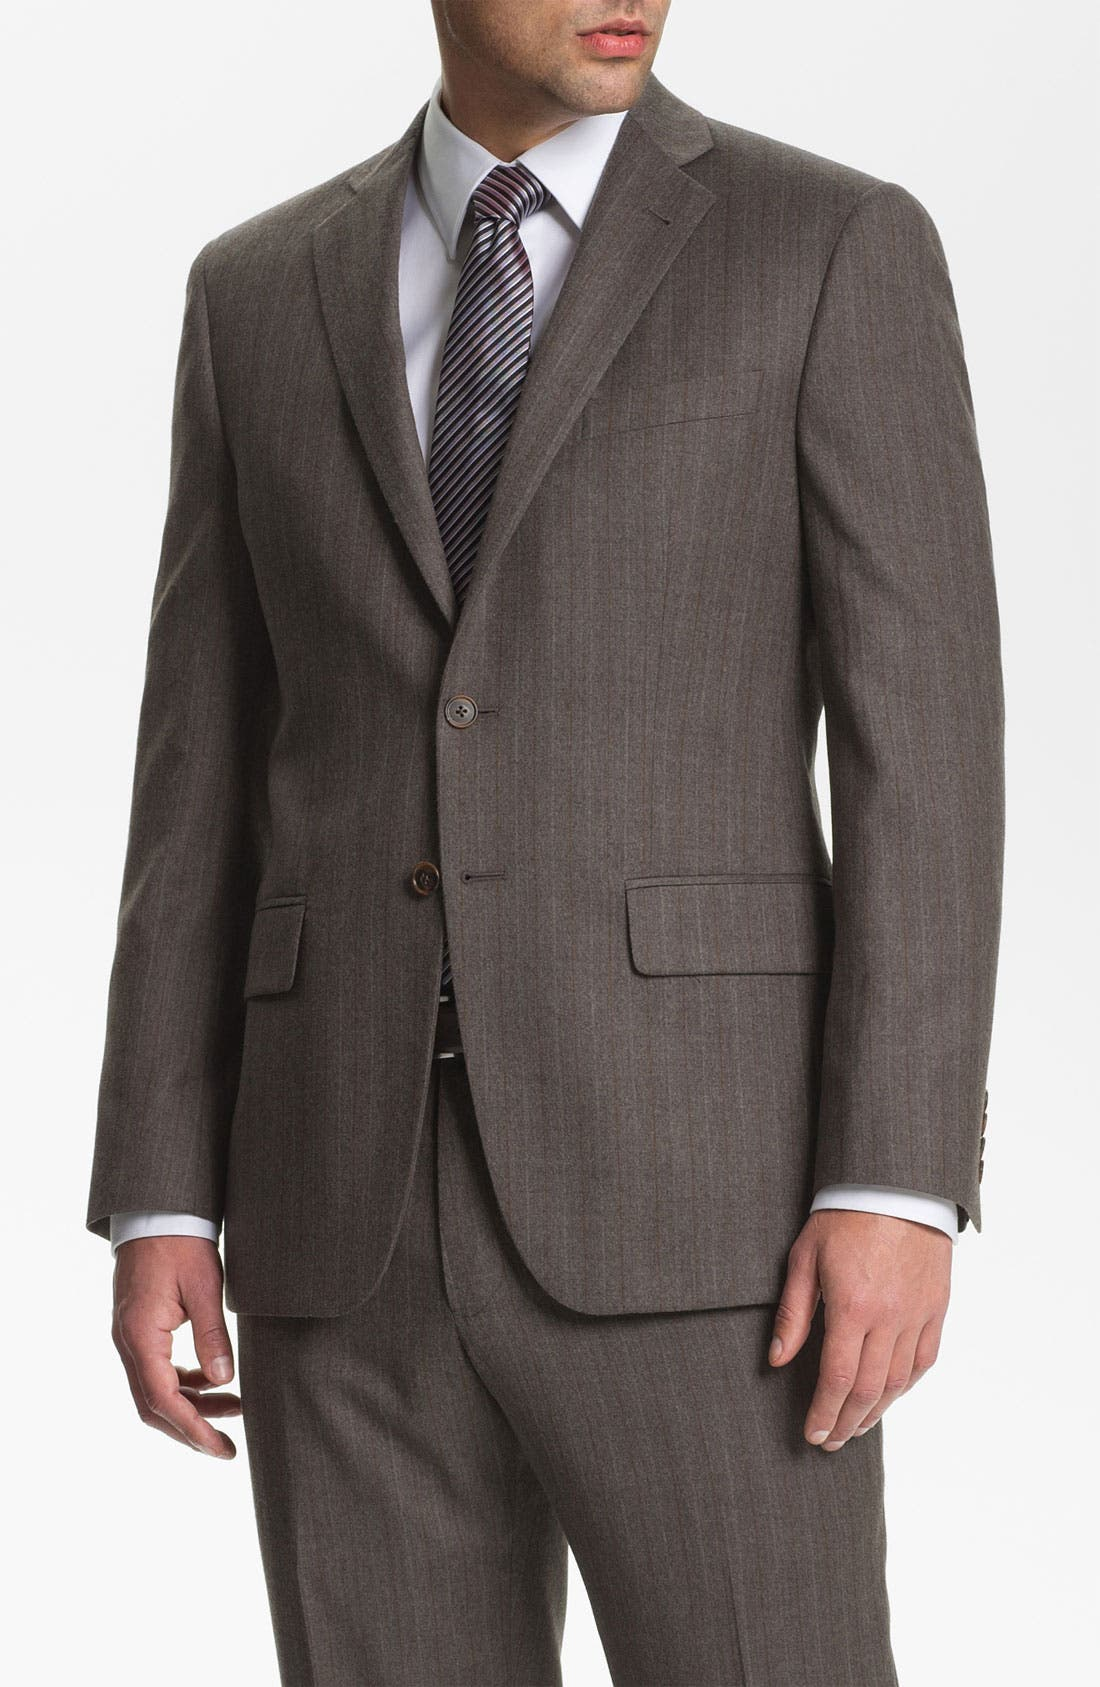 Main Image - Joseph Abboud 'Profile' Trim Fit Stripe Suit